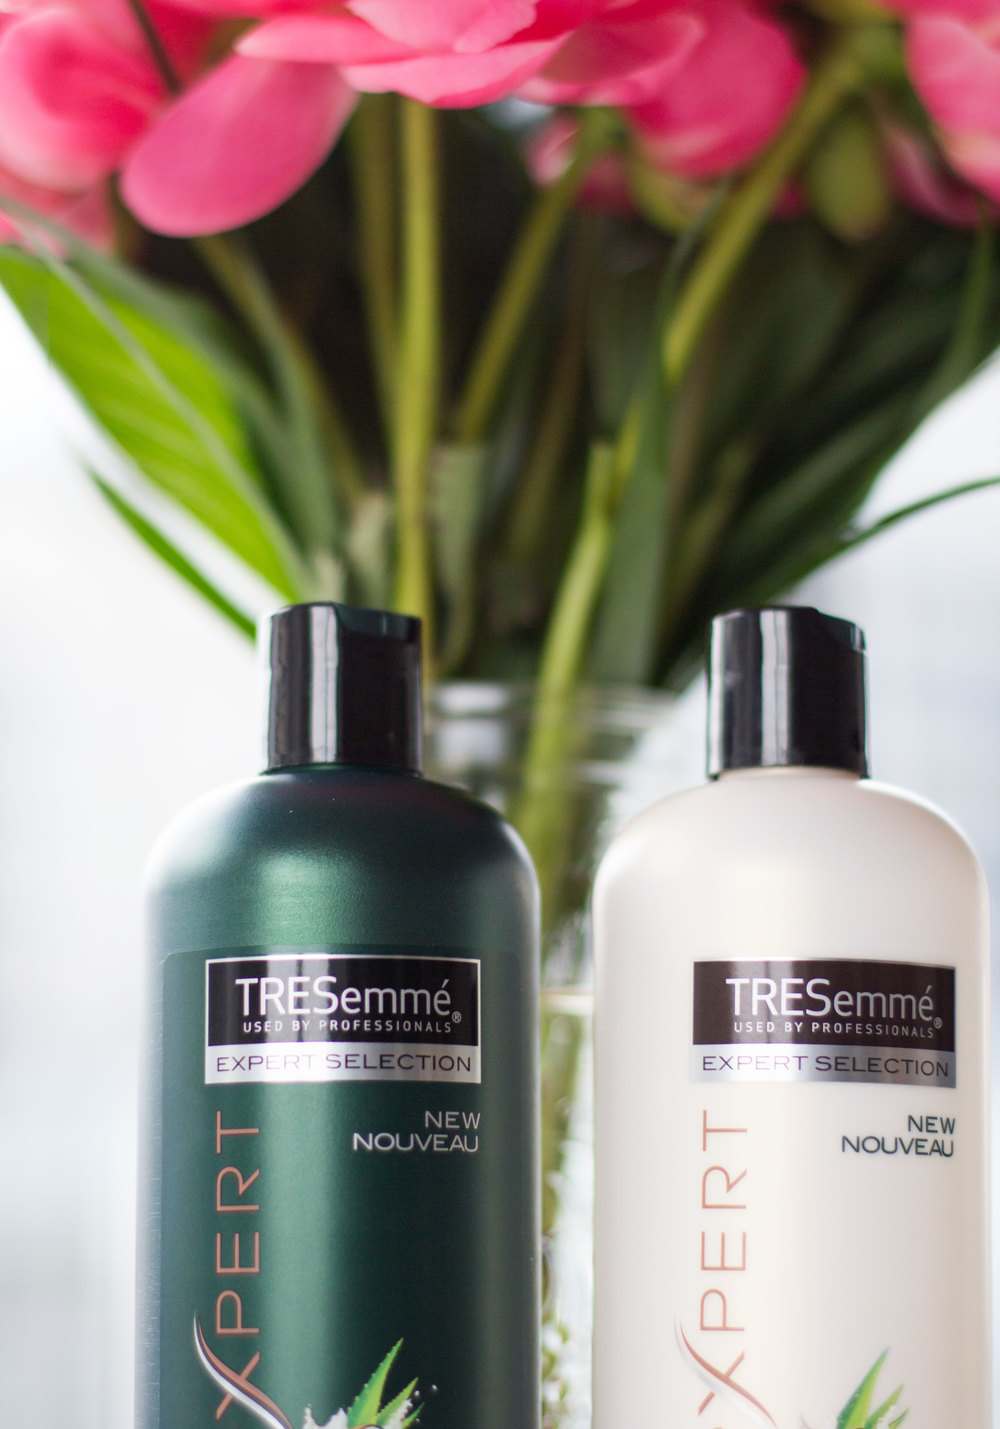 Inexpensive Tresemme Shampoo & Conditioner that smells amazing and is silicone-free!